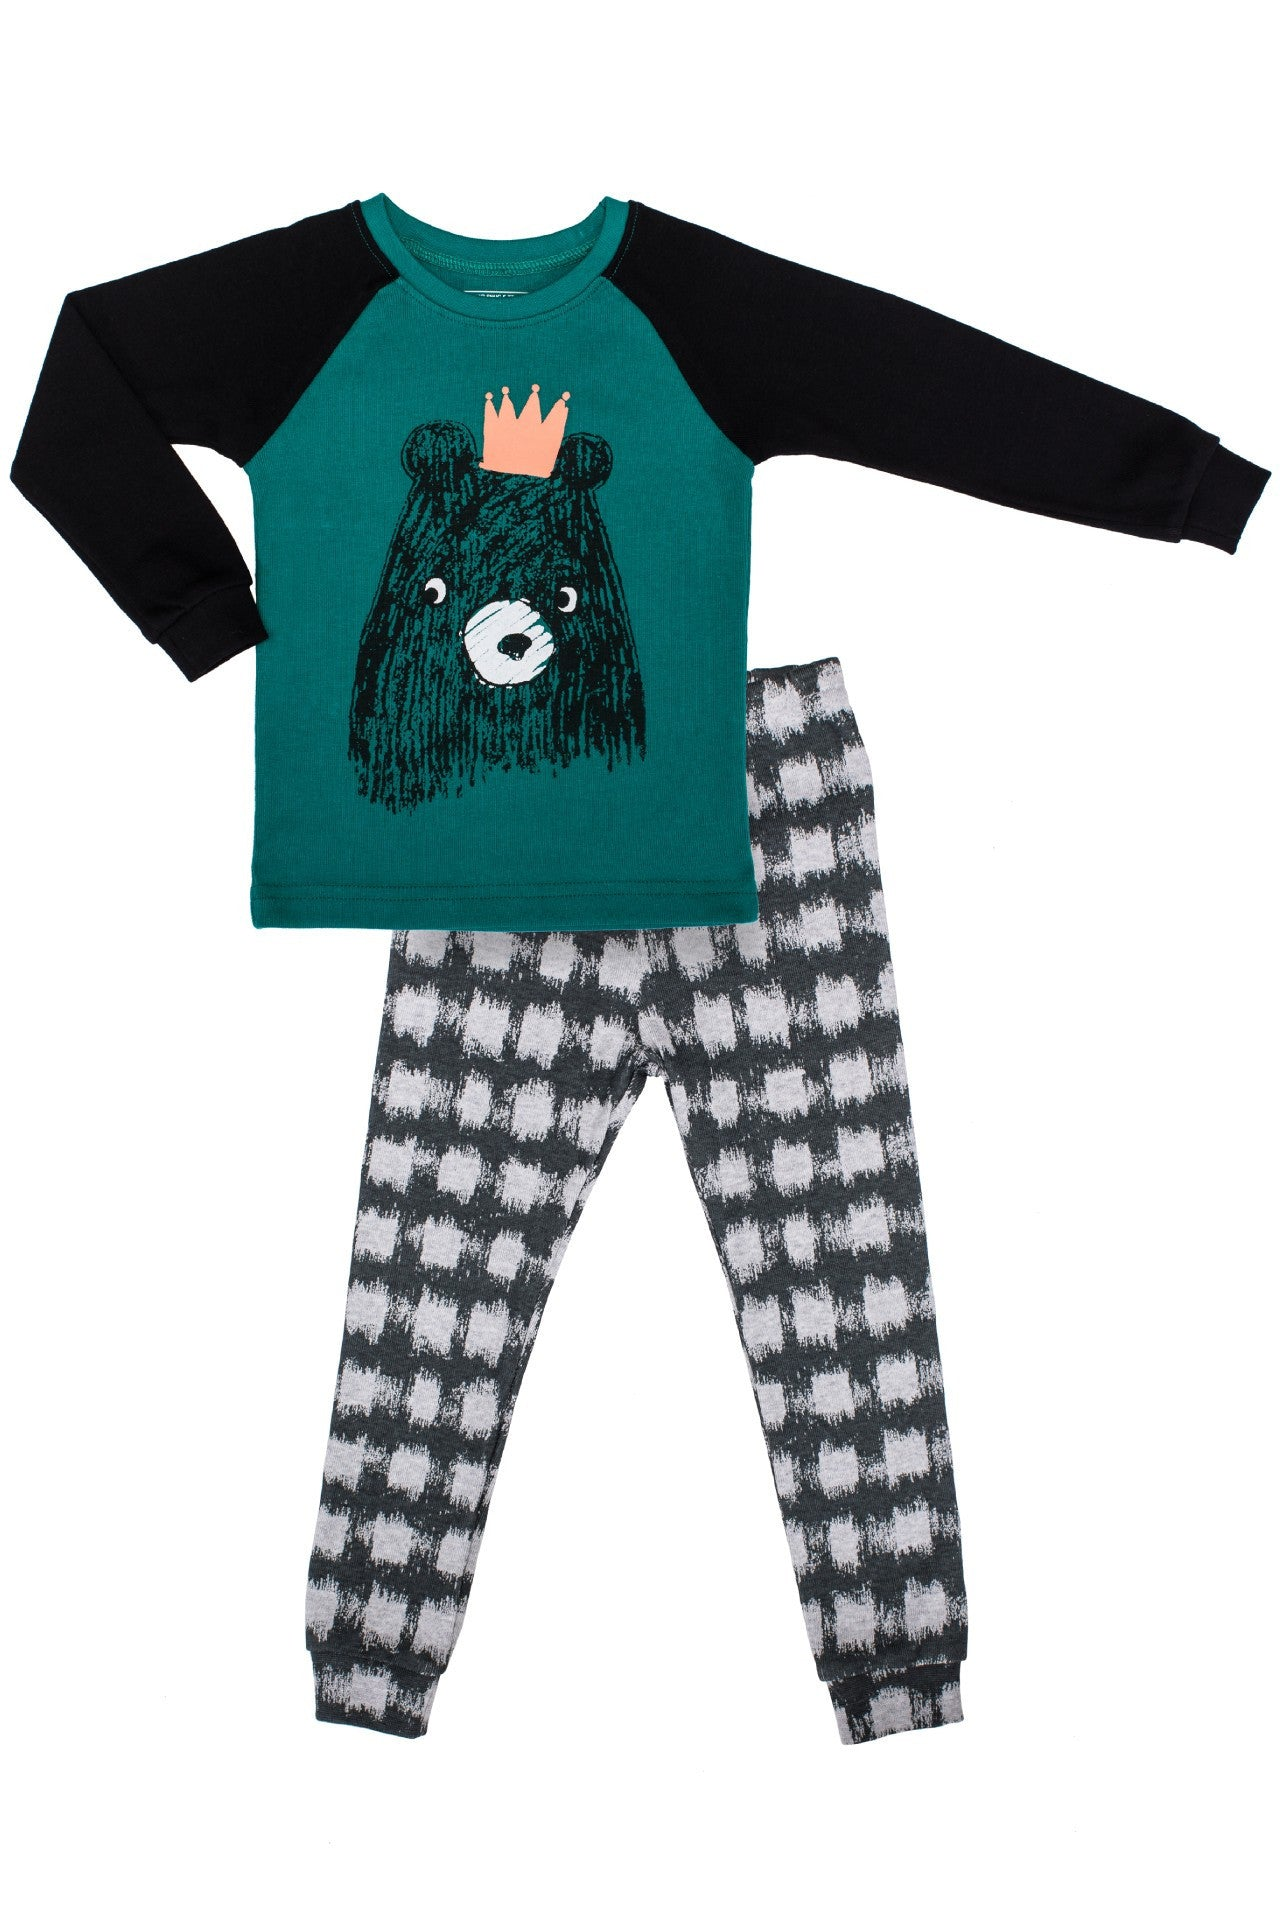 20s Cotton Count - Medium Warmth Pajamas - Grizzly Prince